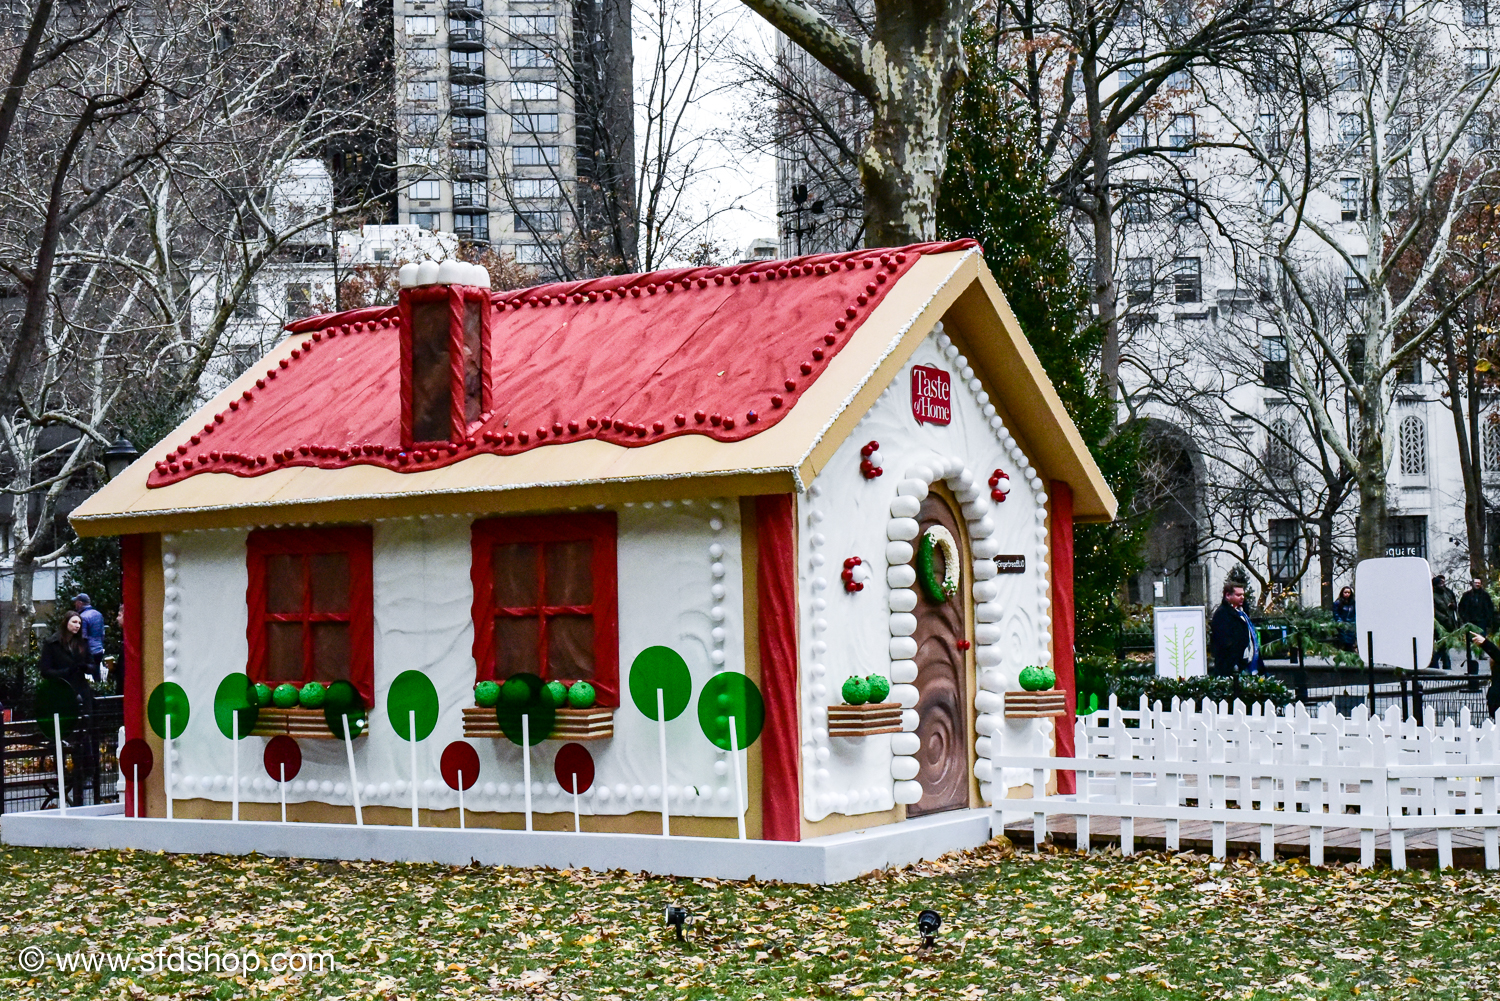 Taste of Home Gingerbread Blvd 2017 fabricated by SFDS-20.jpg